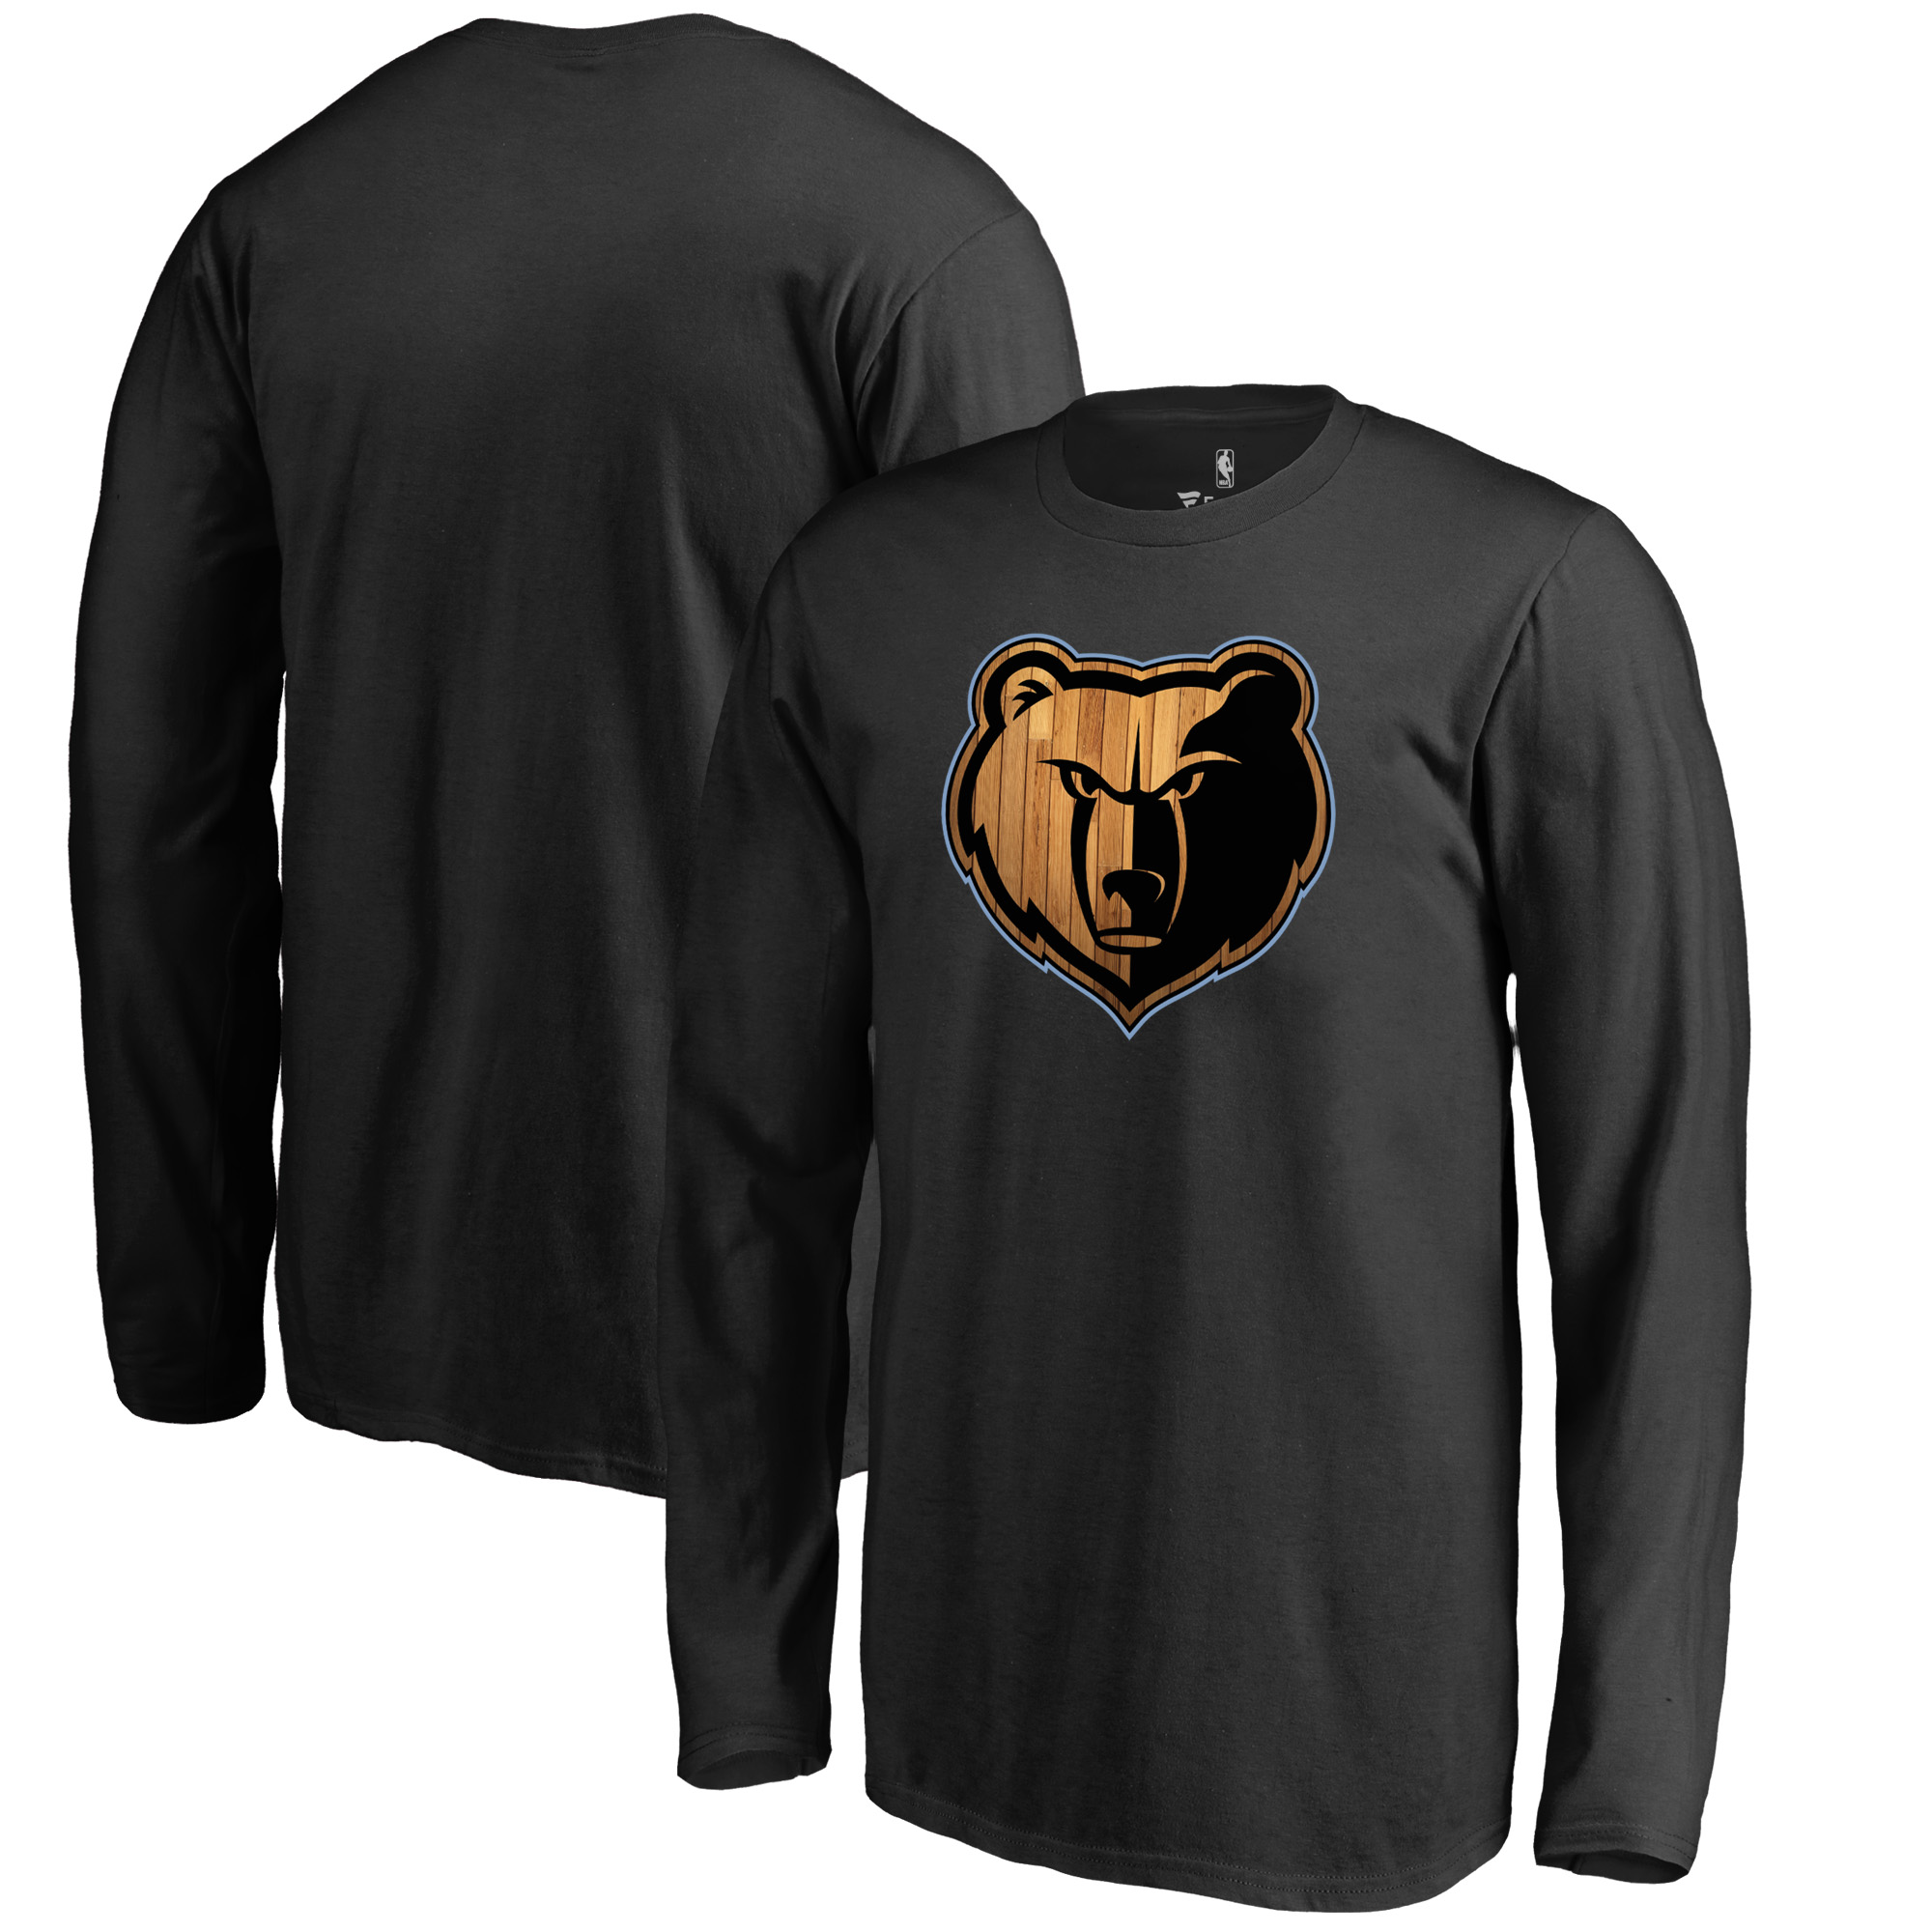 Memphis Grizzlies Fanatics Branded Youth Hardwood Long Sleeve T-Shirt - Black